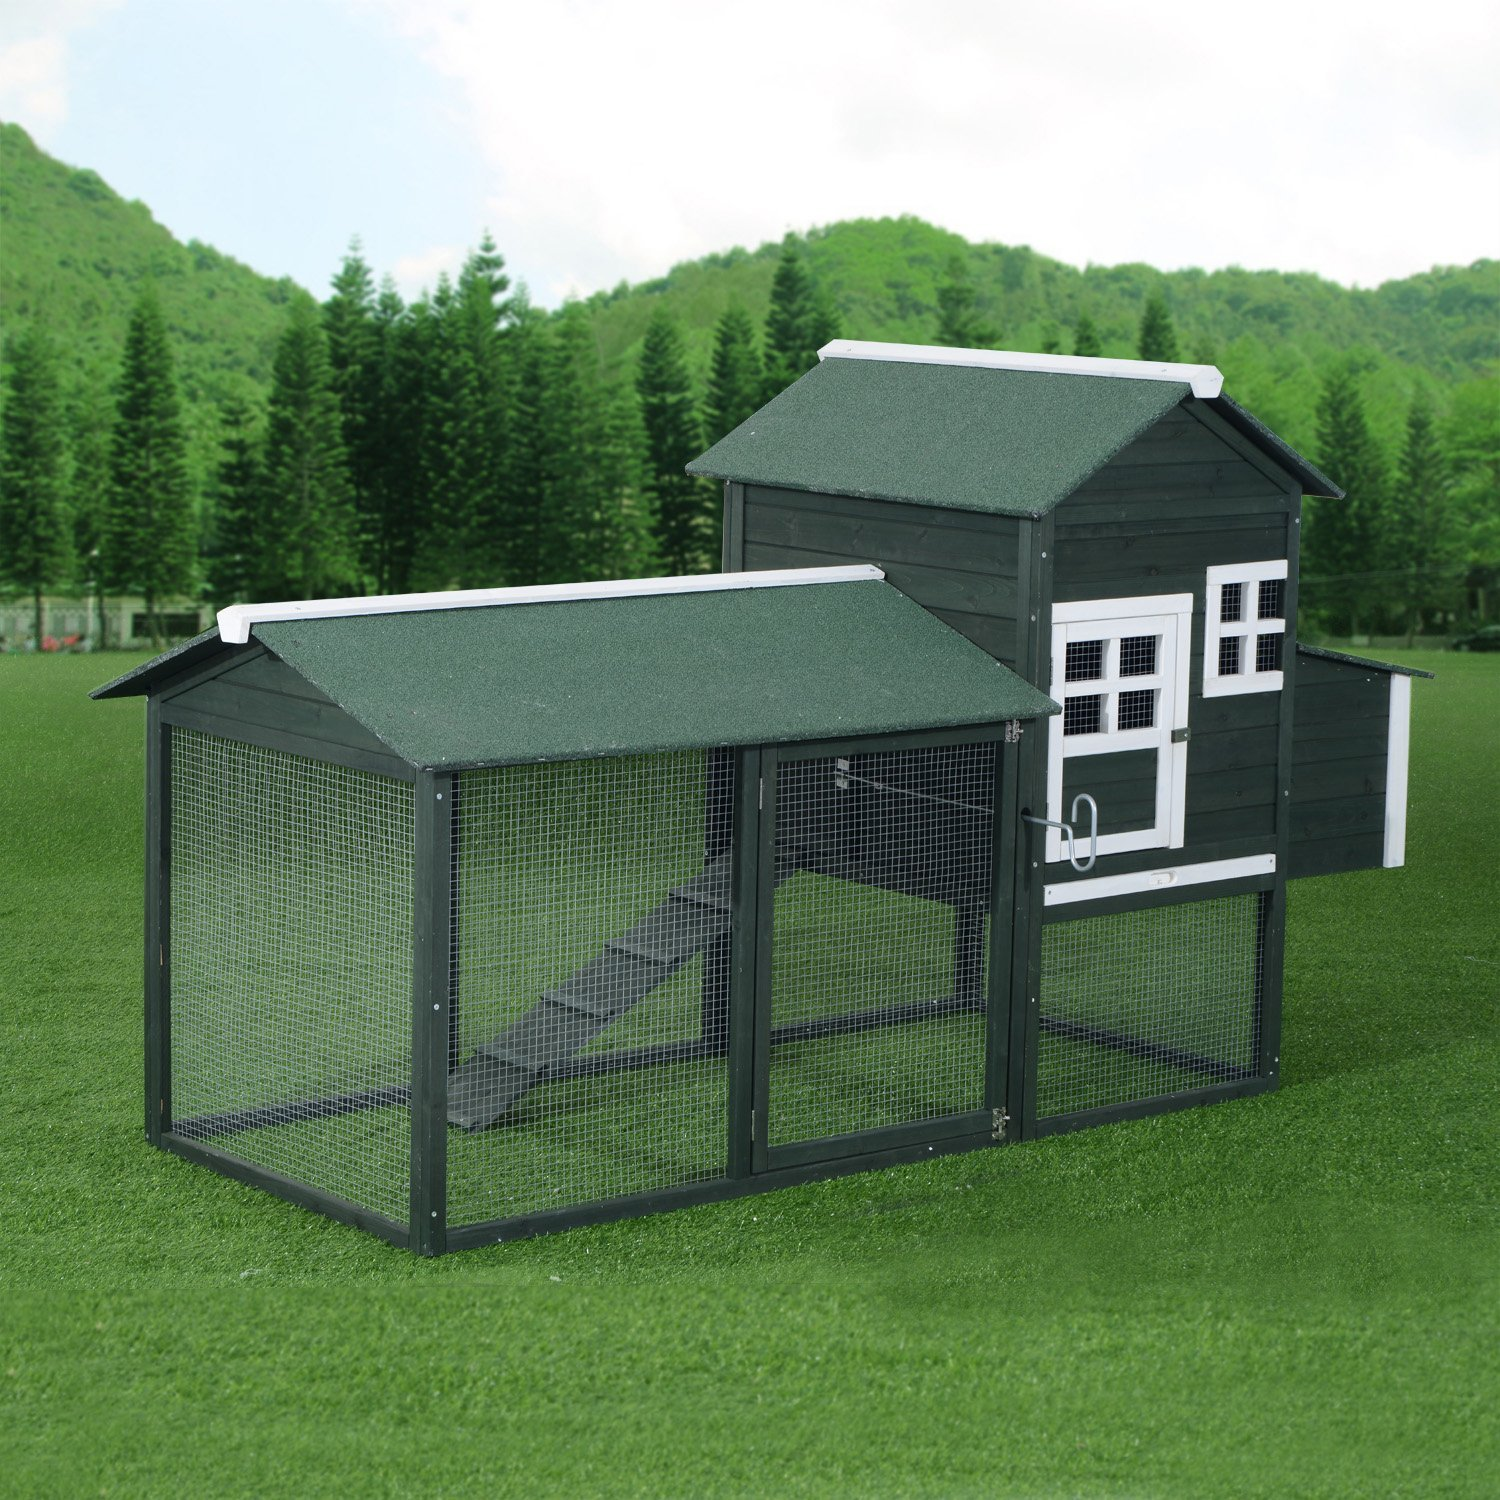 8 amazing chicken coop plans for sale home decor ideas